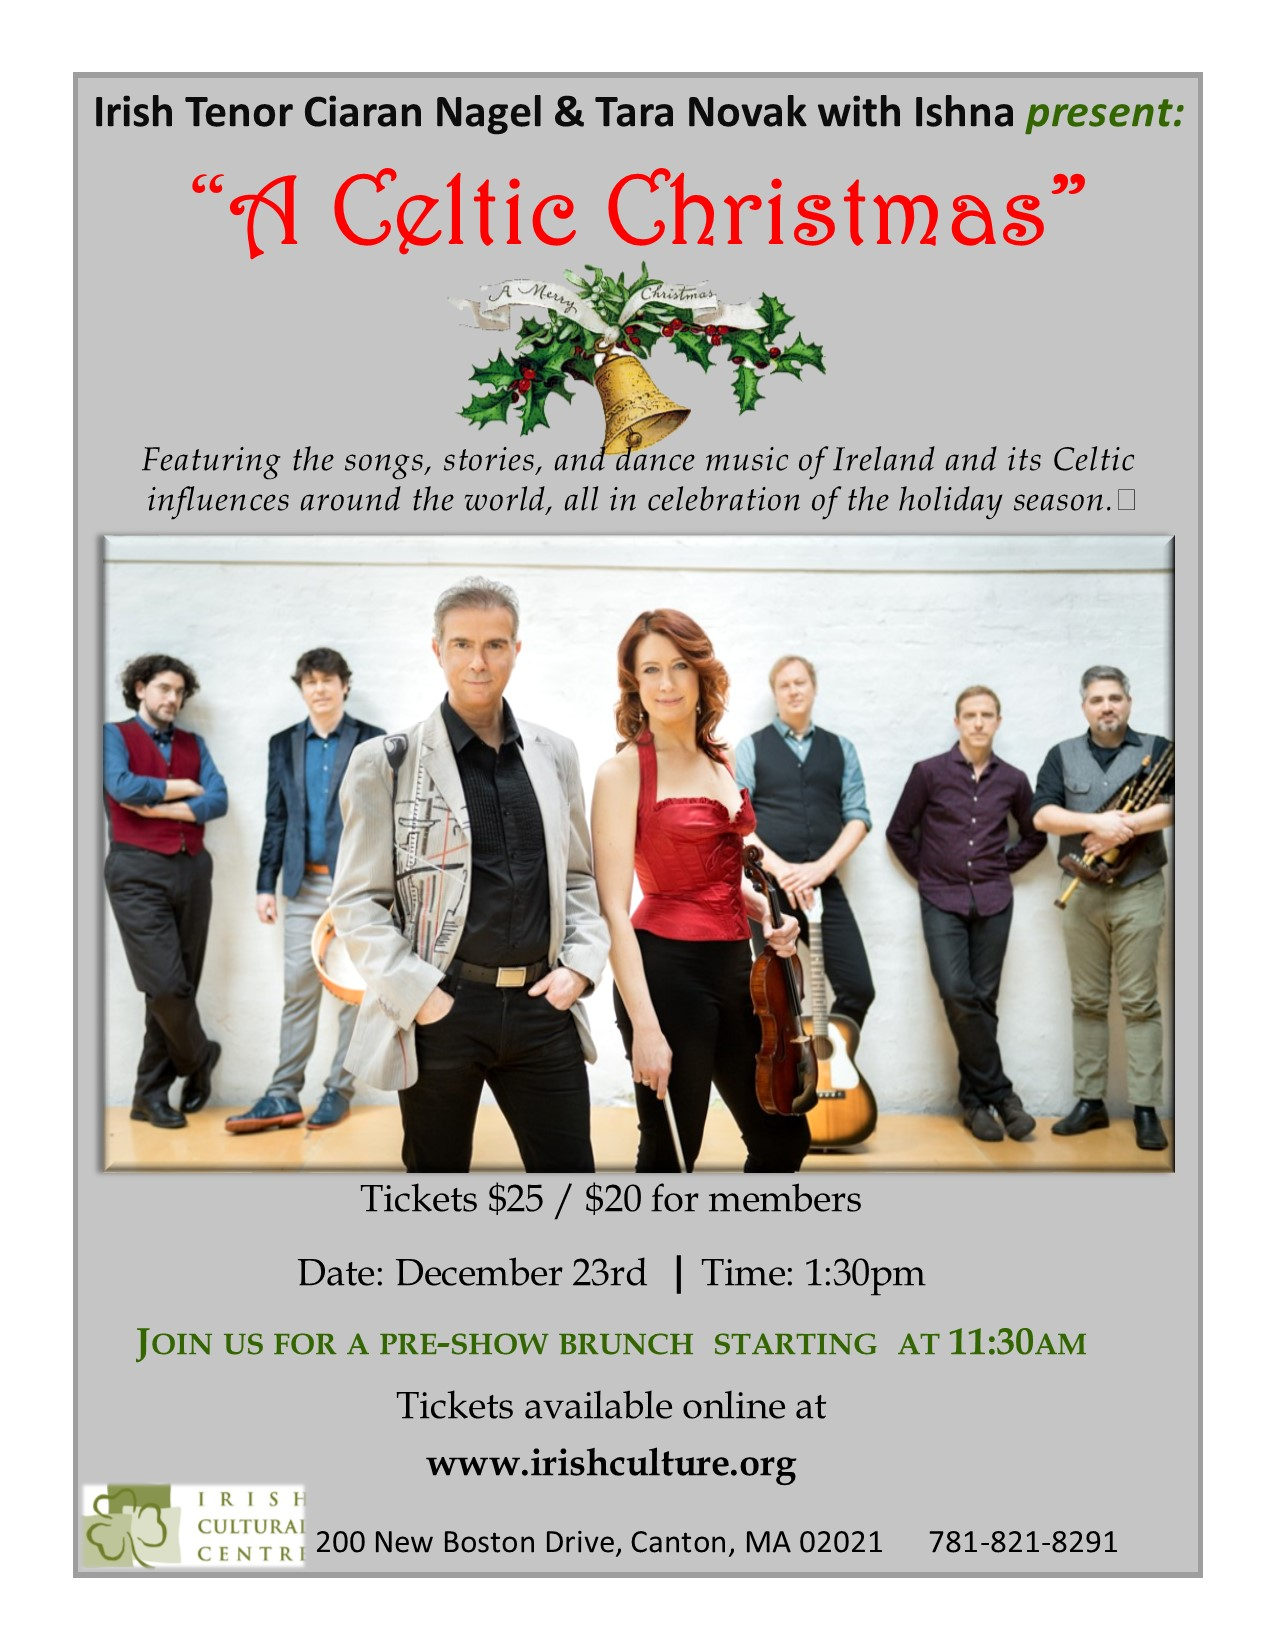 Irish Cultural Centre of New England A Celtic Christmas